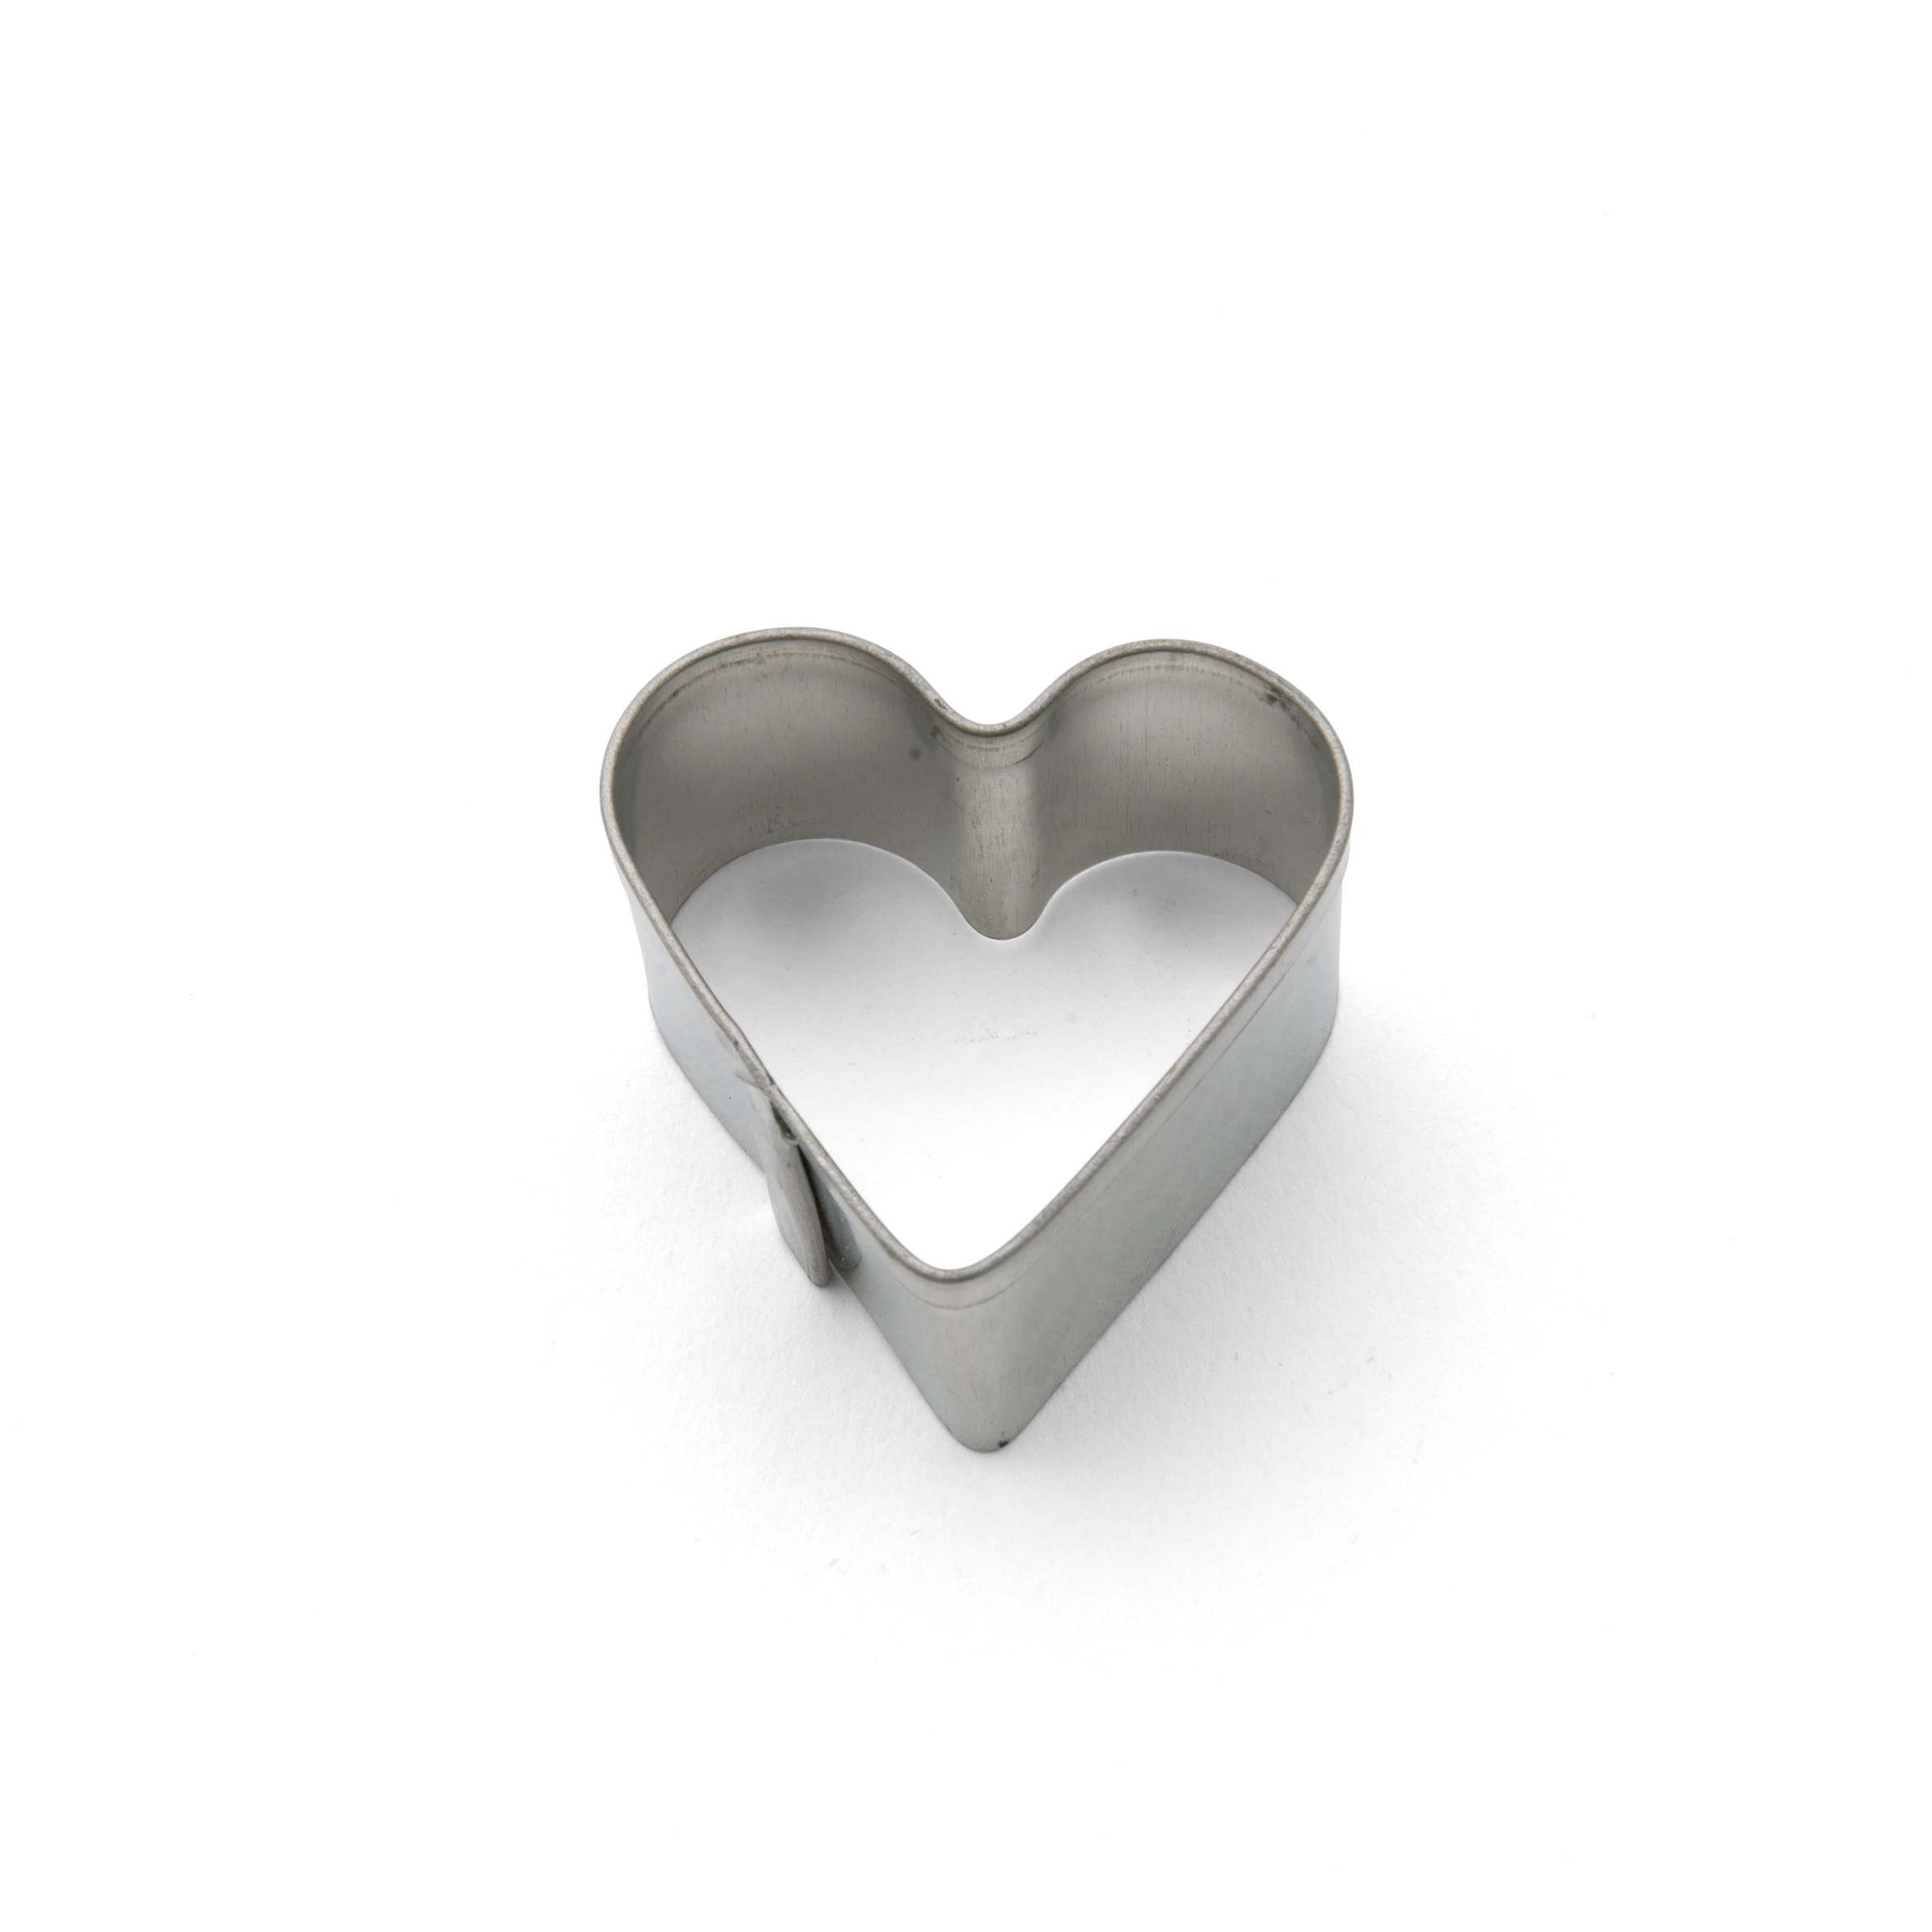 Heart Small Cookie Cutter Cuttercraft